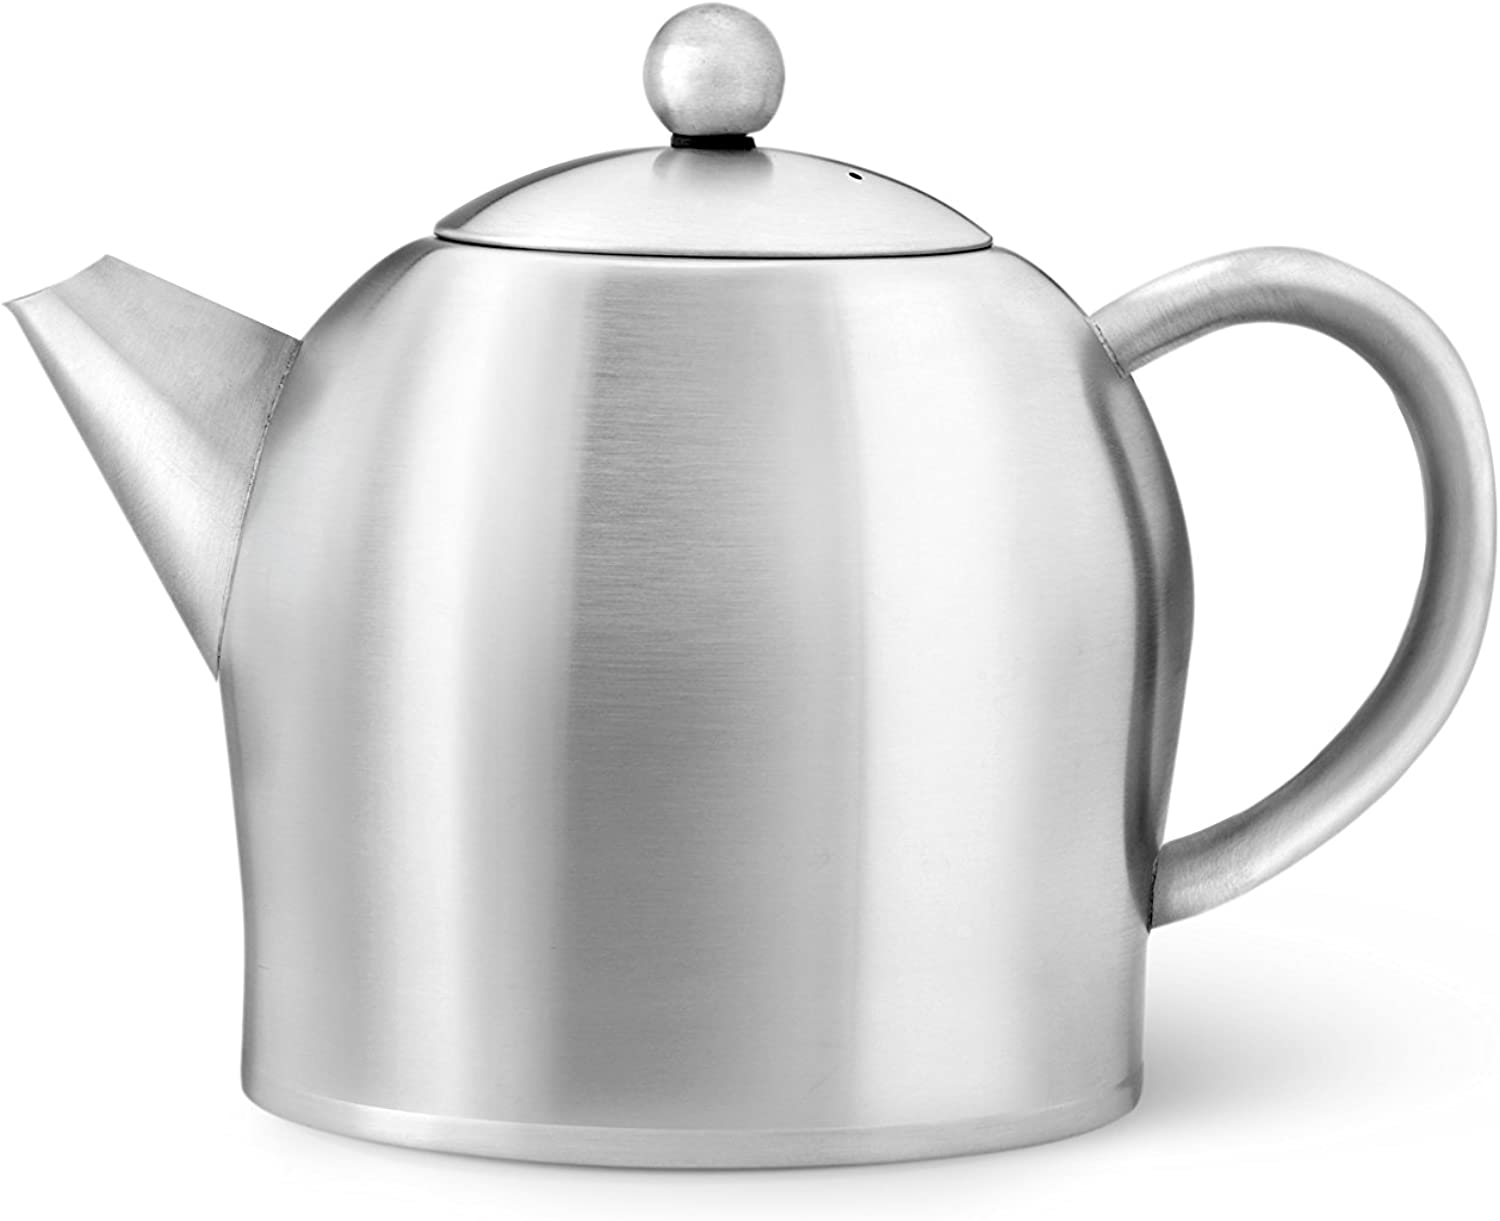 Bredemeijer 0.5Liter Teapot Double Wall Stainless Steel Satin SANTHEE